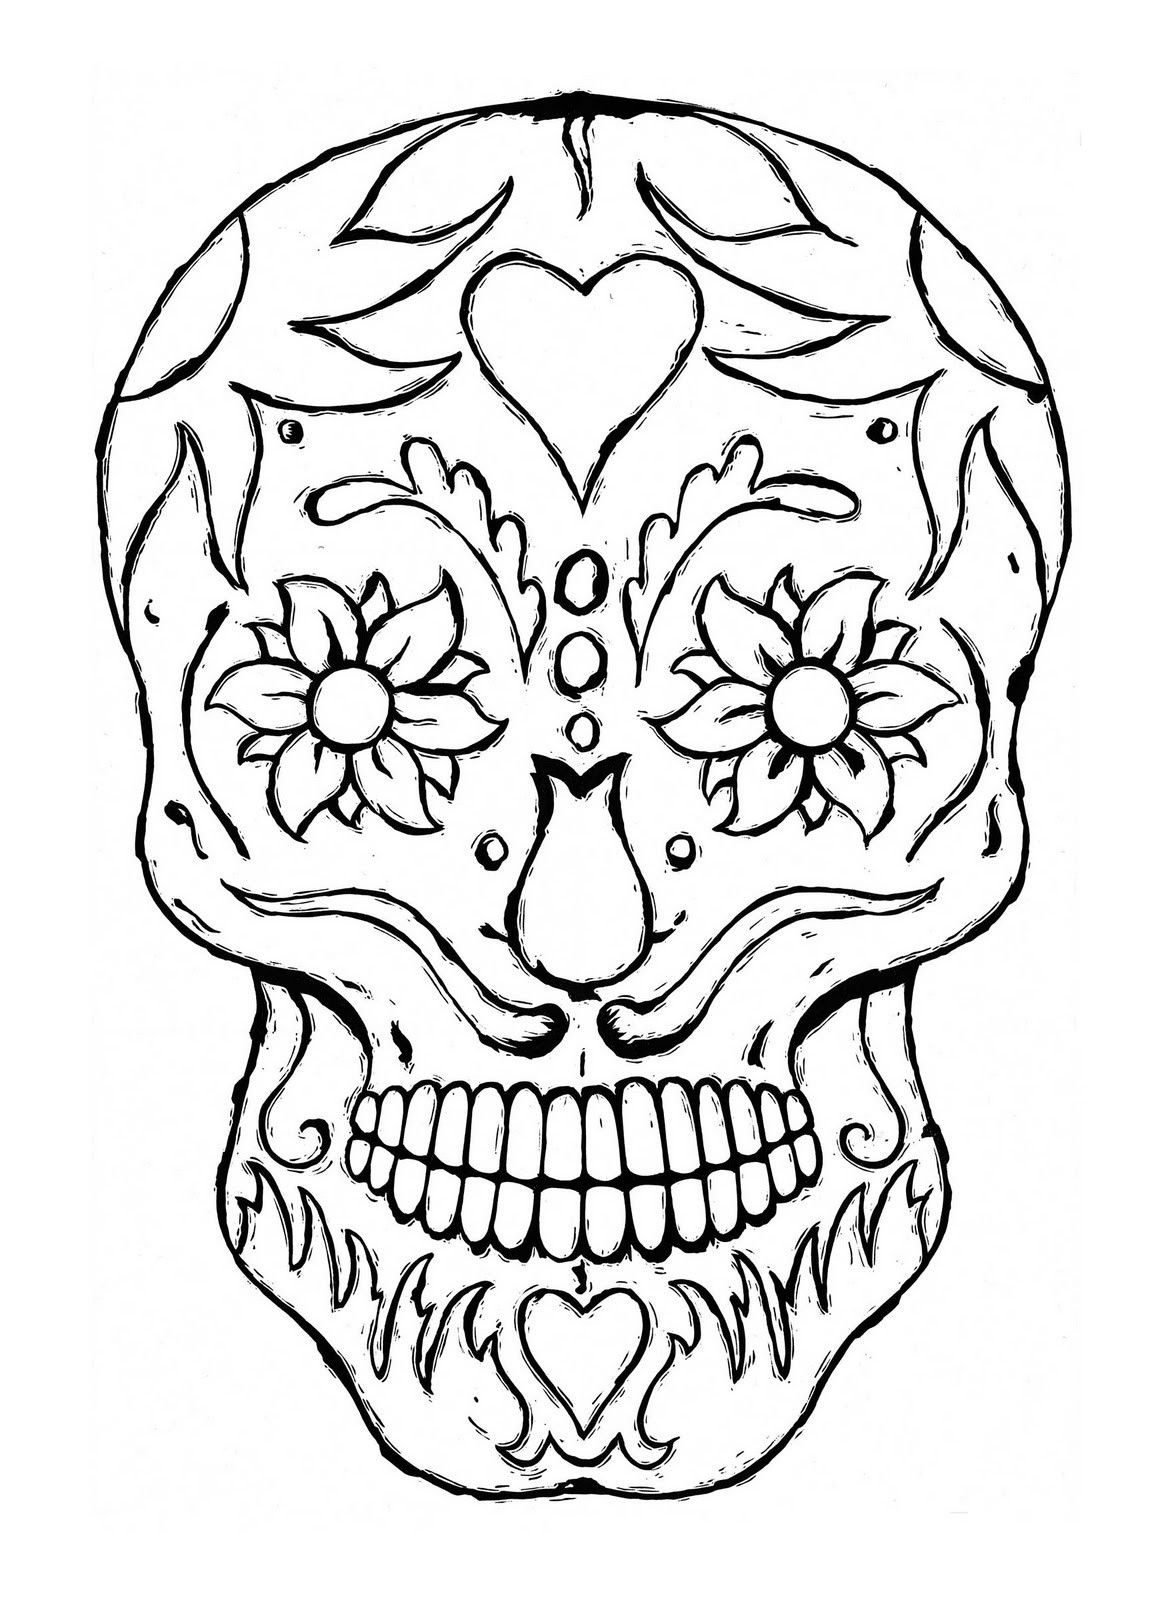 skull mask coloring pages, printable skull mask coloring pages, free ...